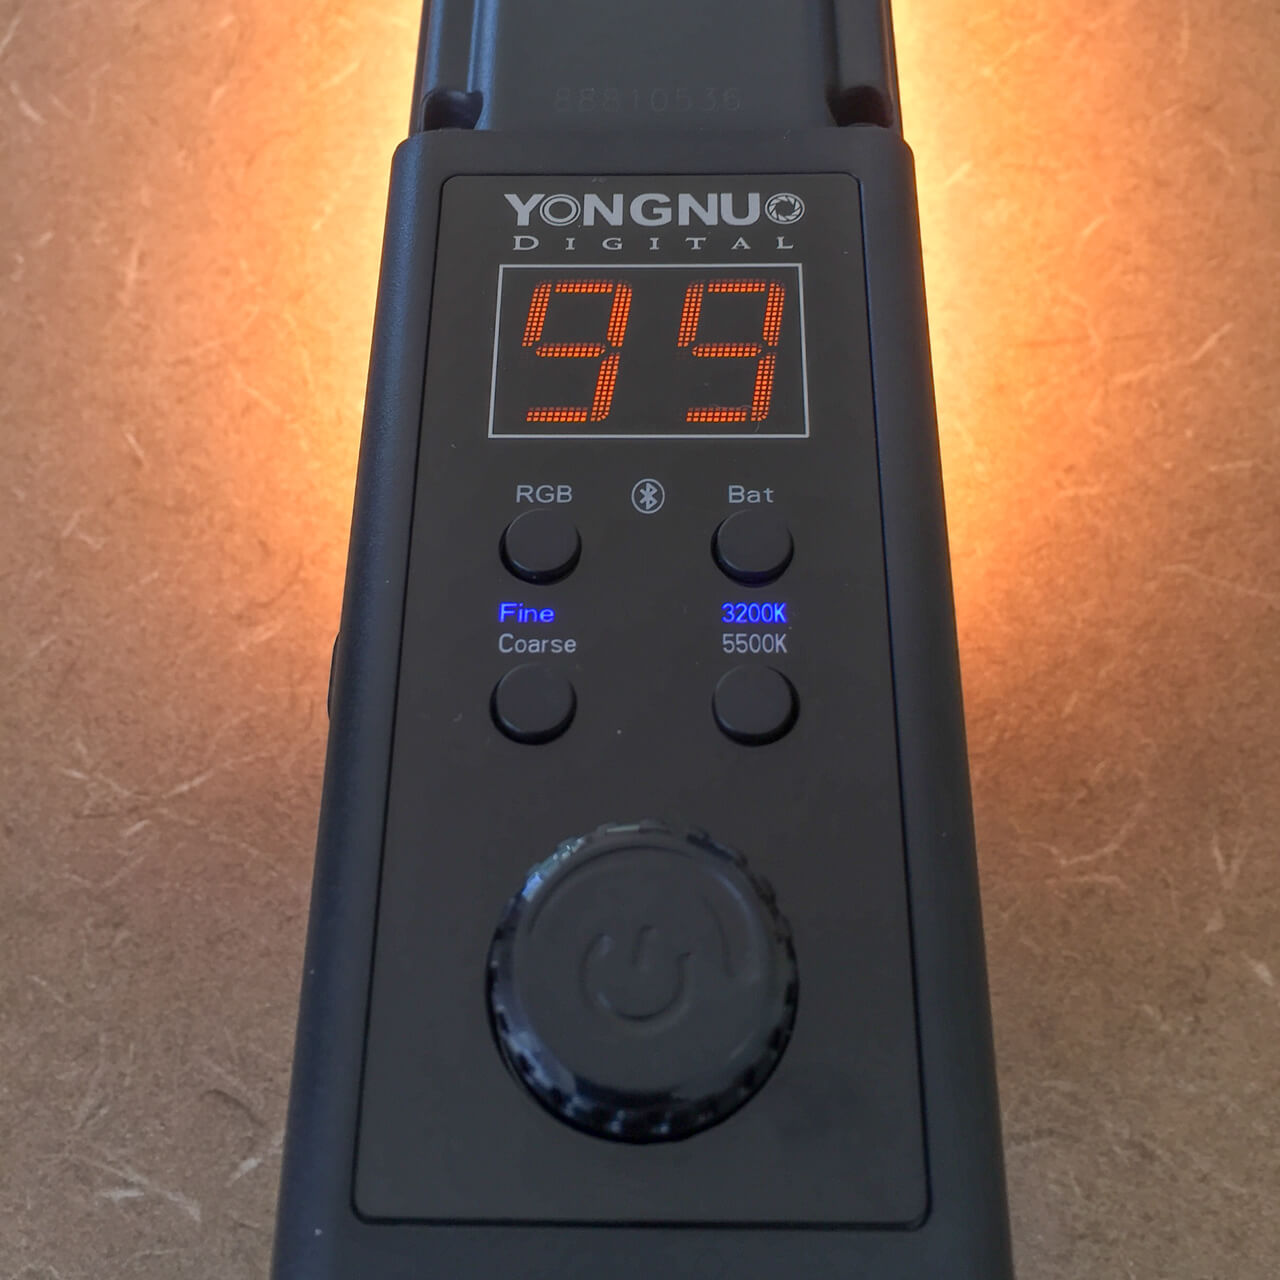 Yongnuo YN360 On-Board Controls